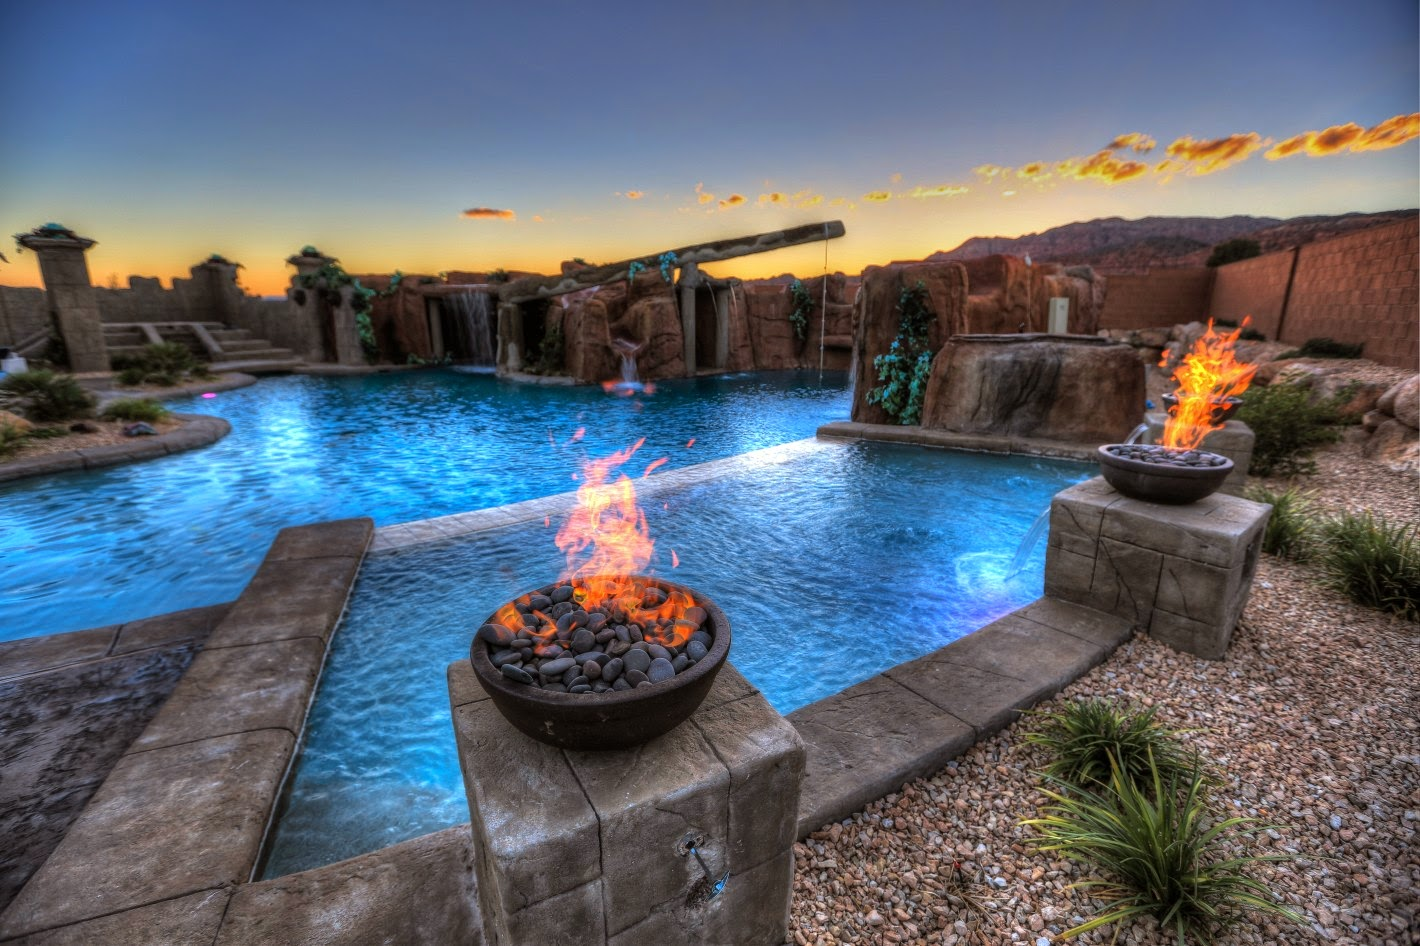 Gas Piping Tiki Torches Salt Lake Provo St George Utah Fire Pits Underground